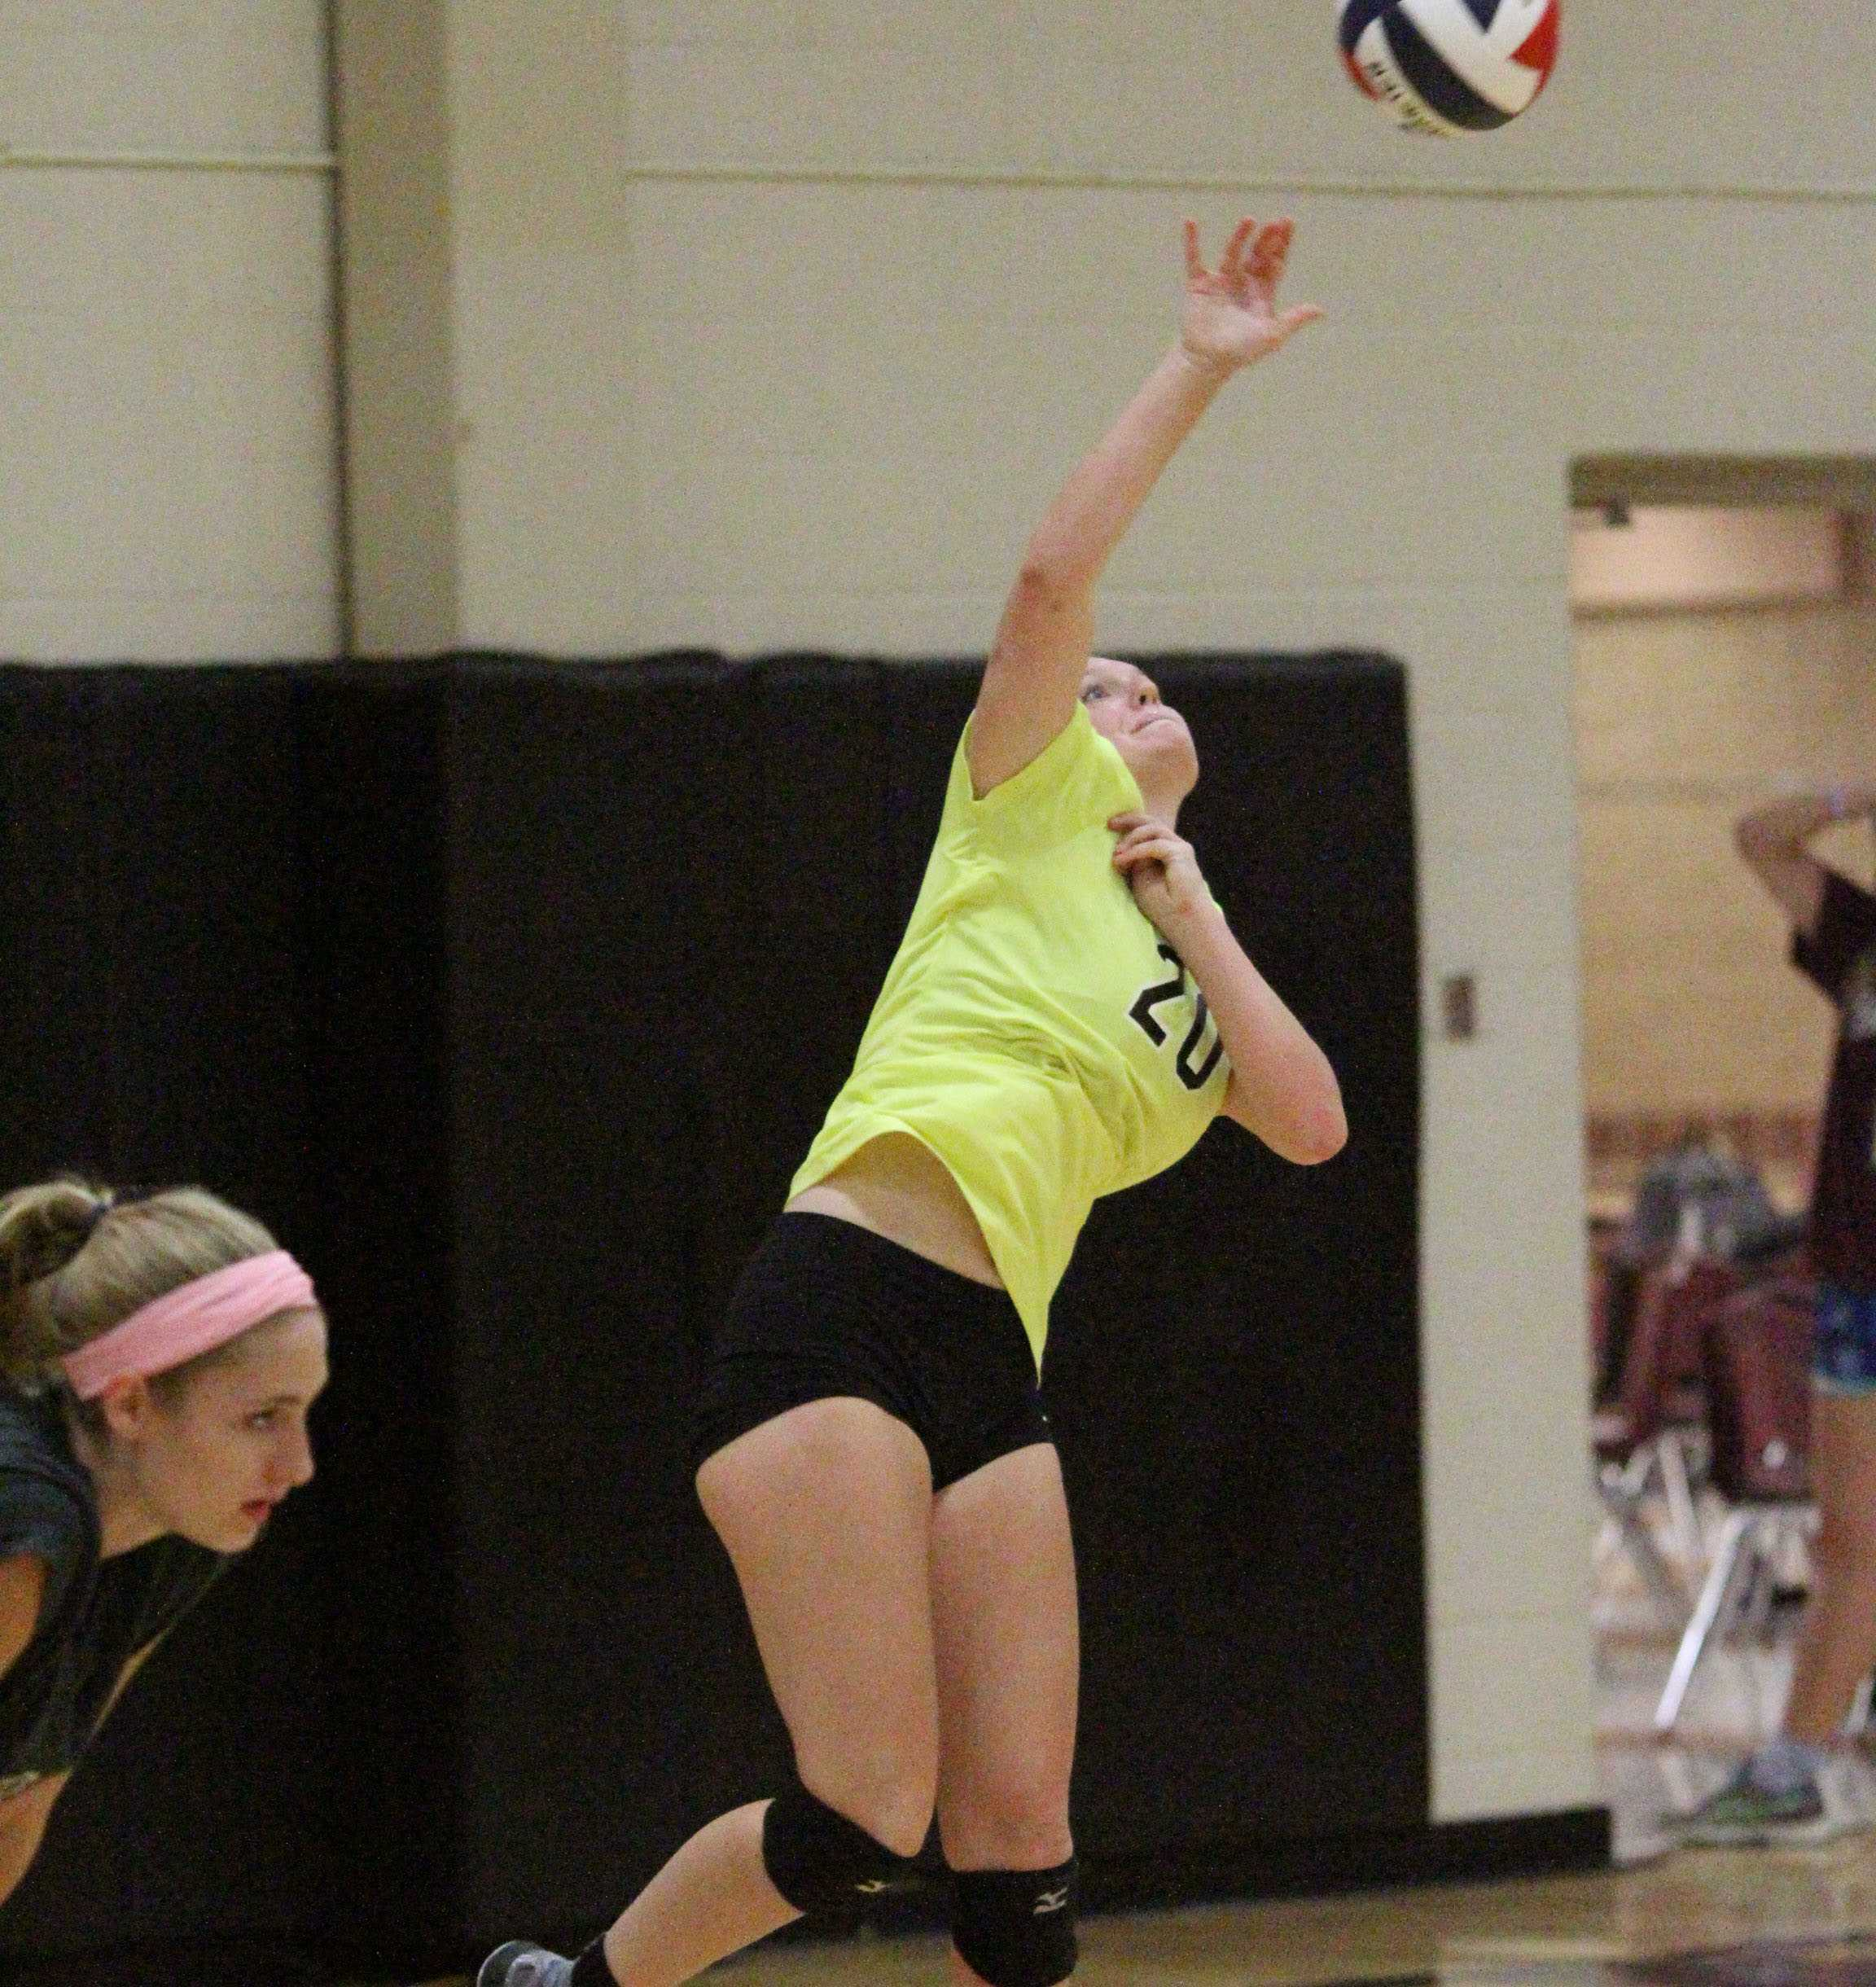 Kailey Kantouth serves the ball in a game against Lindbergh.